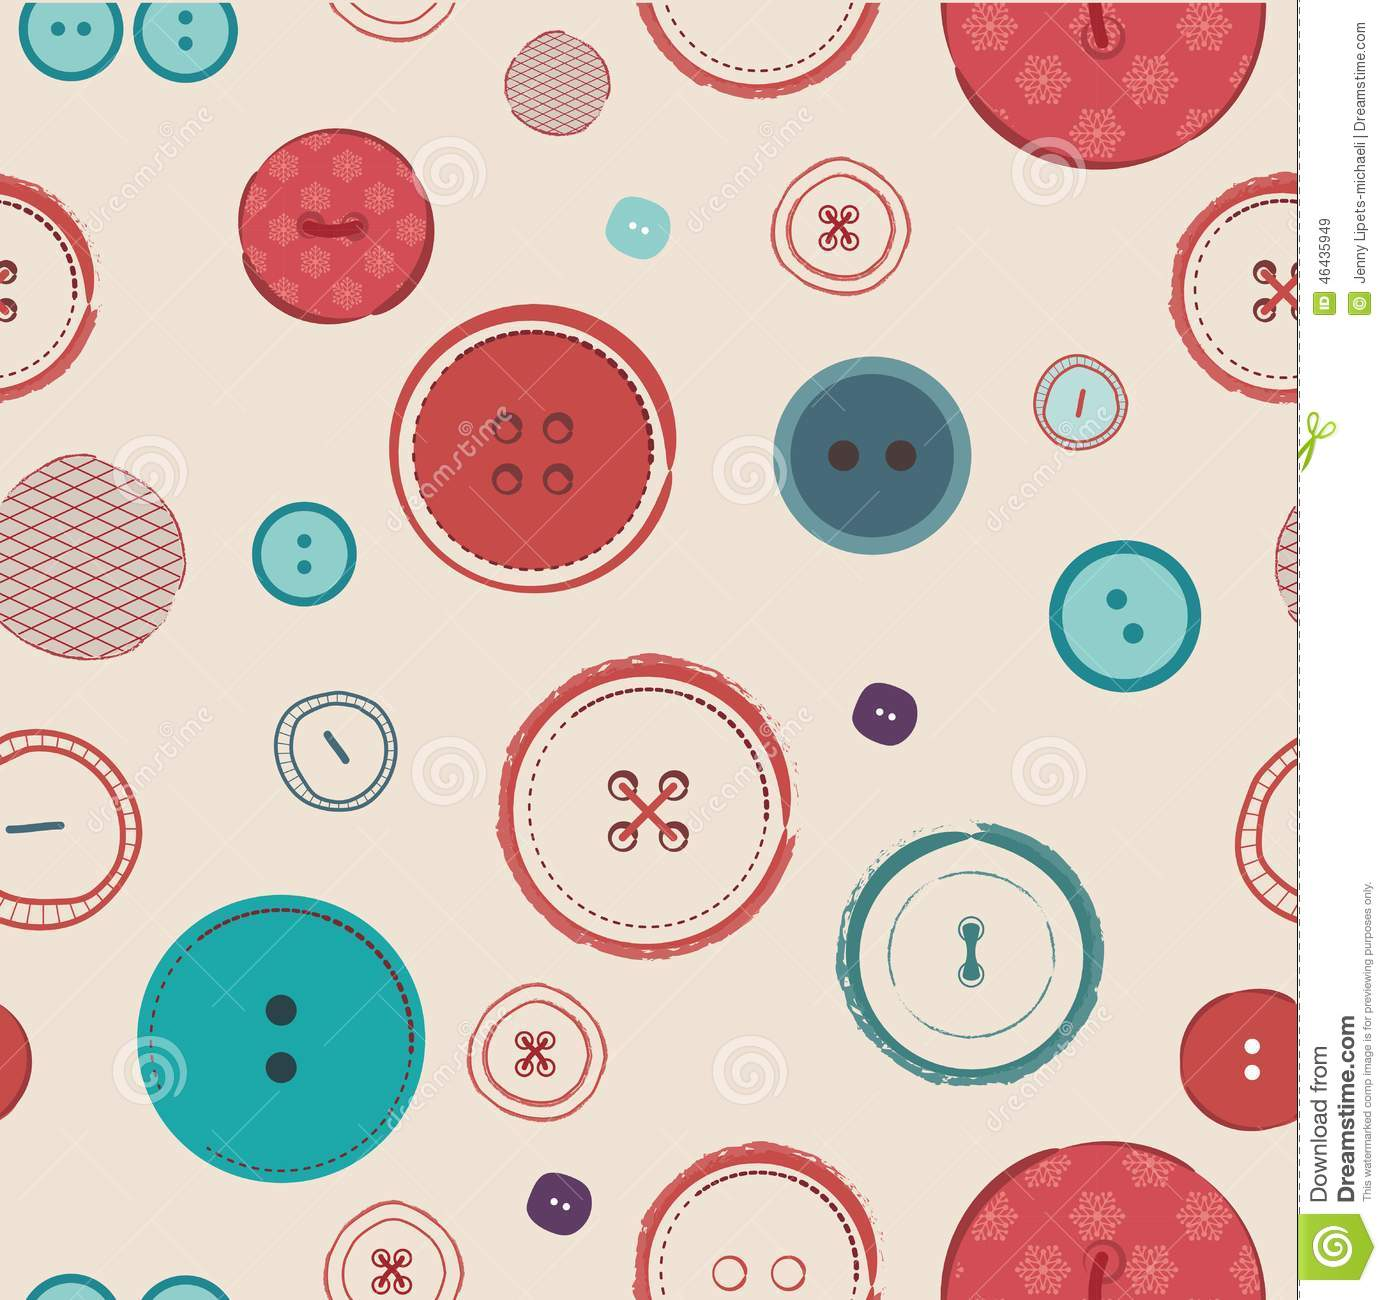 Retro Vector Seamless Pattern Bright Colors Buttons On